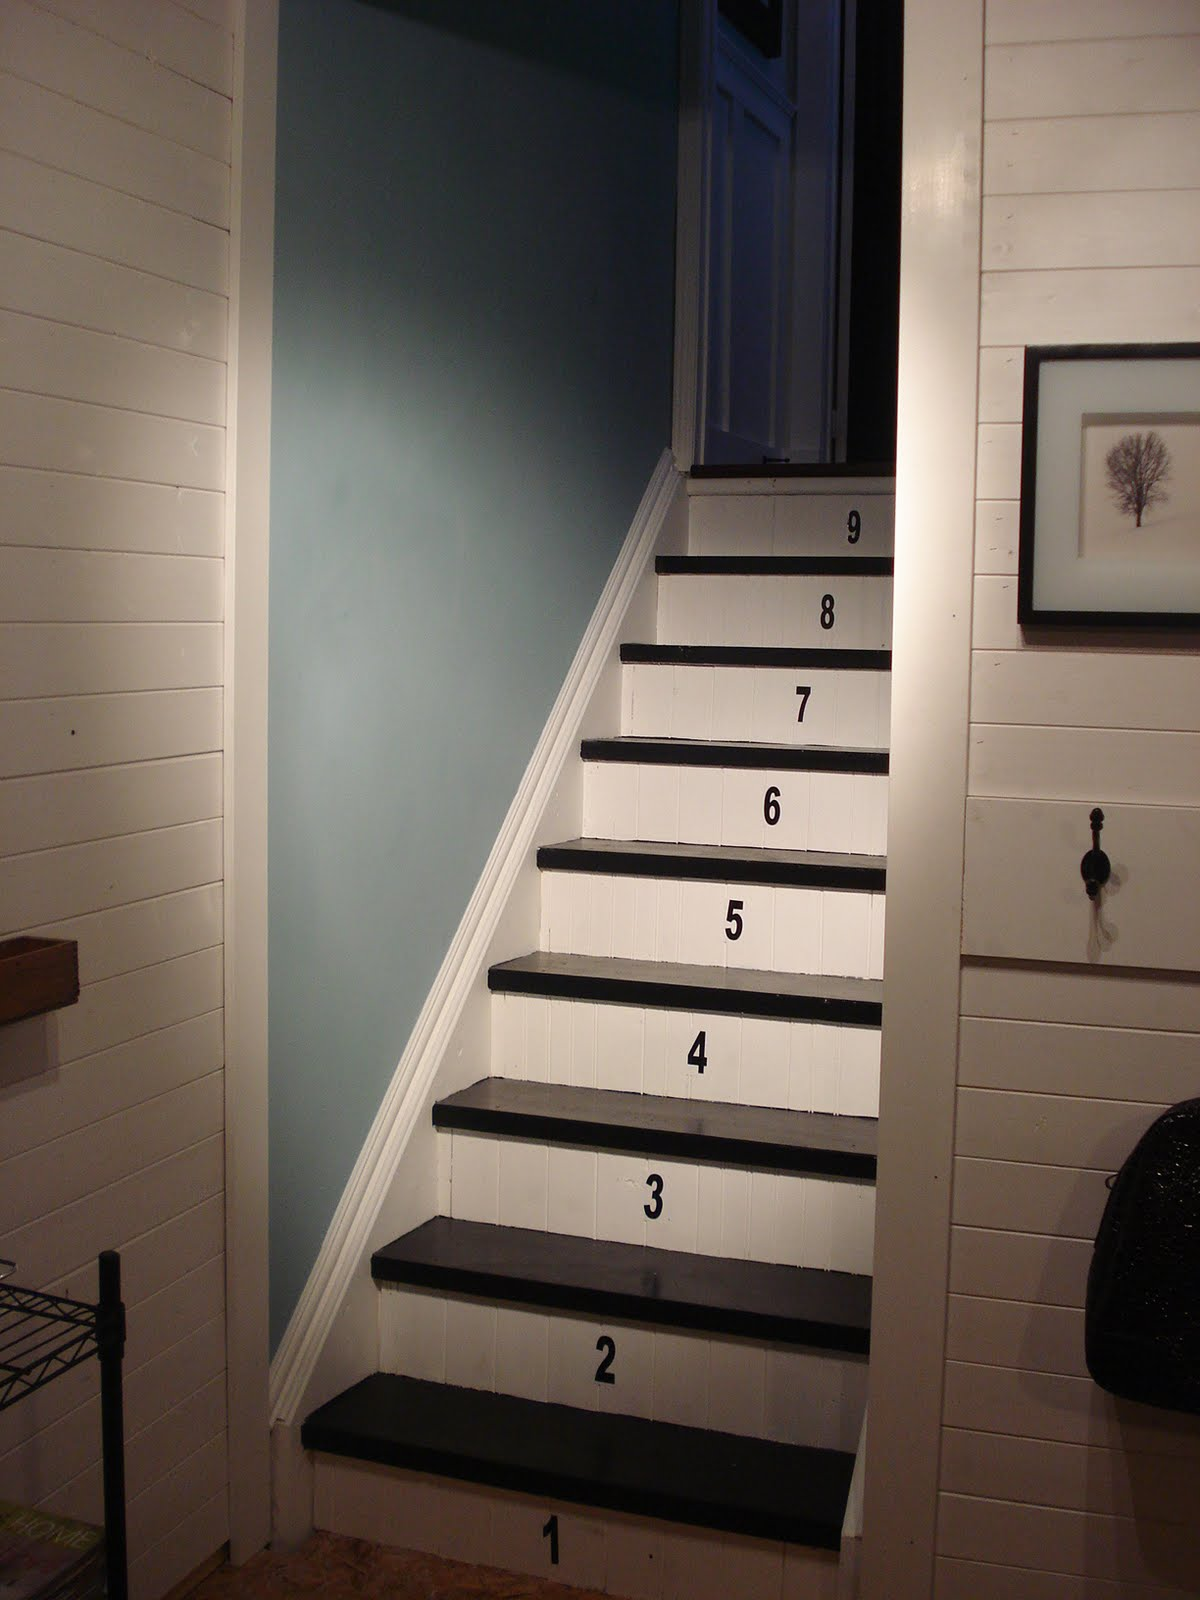 have finally finished the basement stair makeover which included